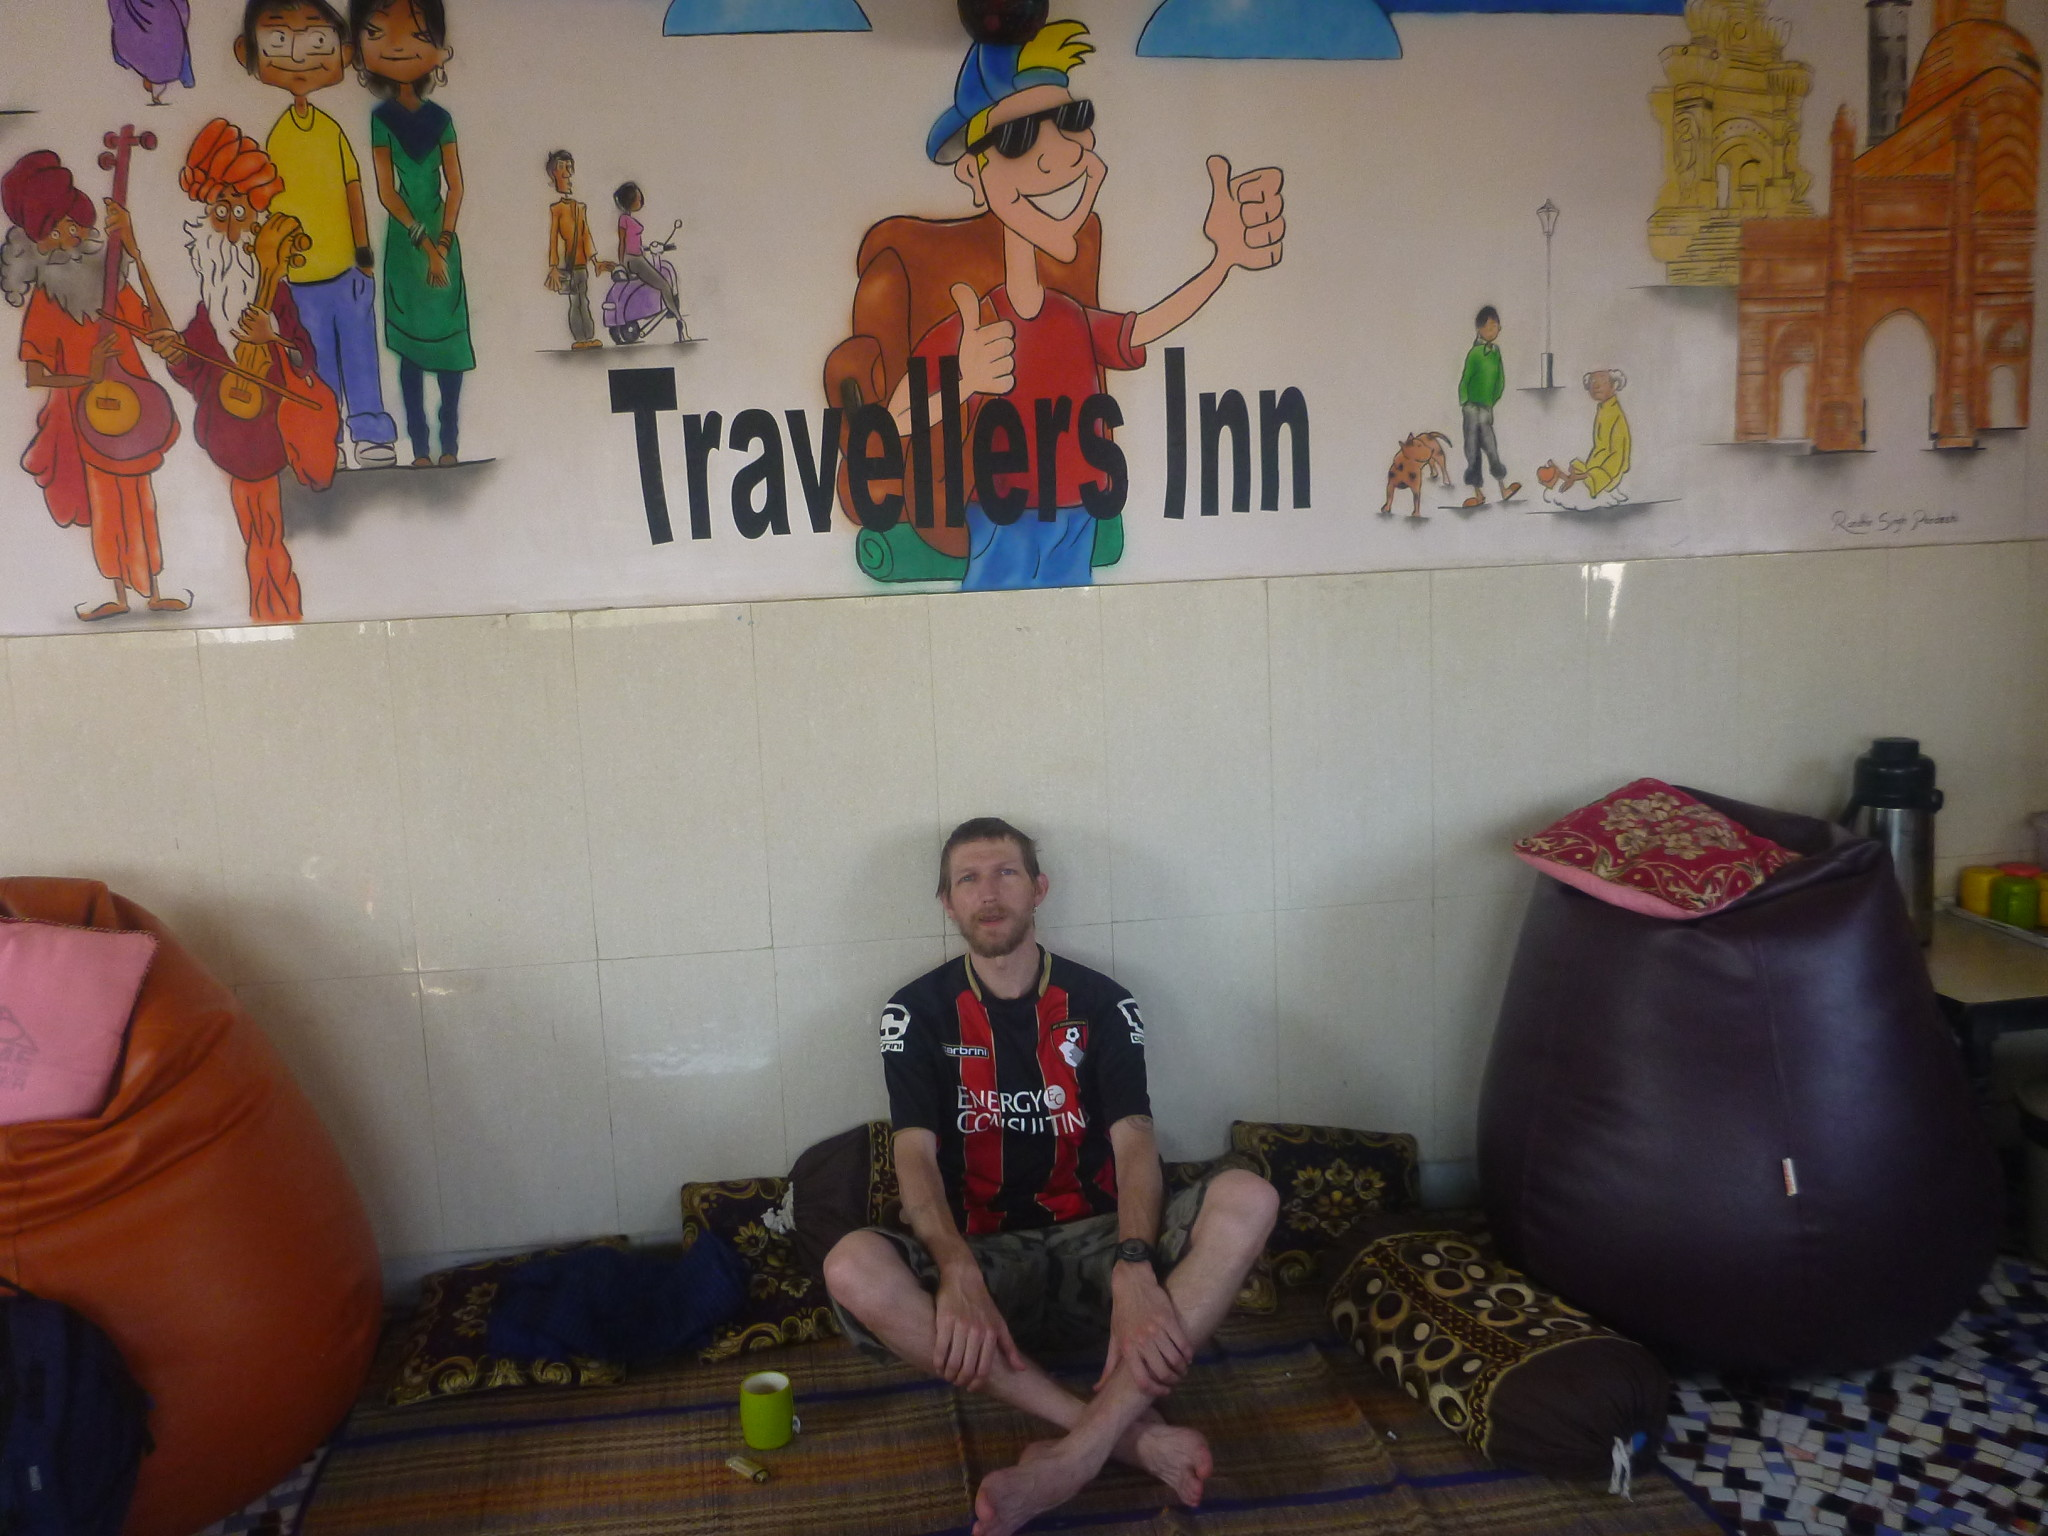 Backpacking in India: Staying at the Travellers Inn, Mumbai